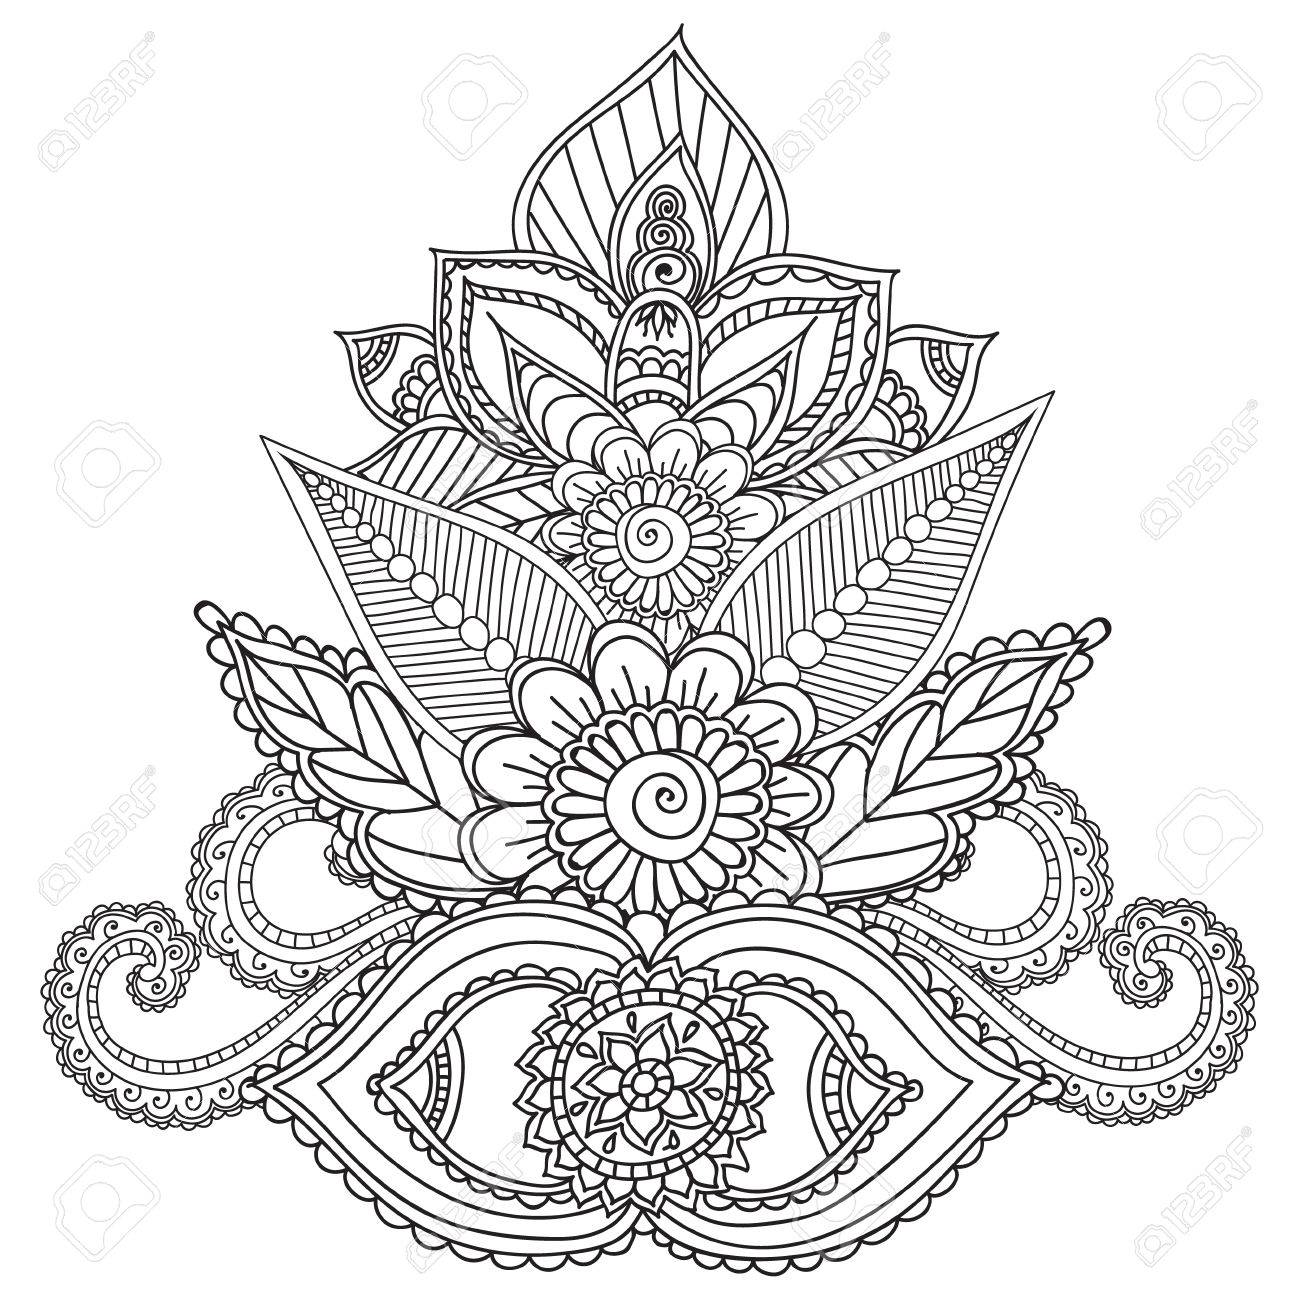 1300x1300 Coloring Pages For Adults. Henna Mehndi Doodles Abstract Floral